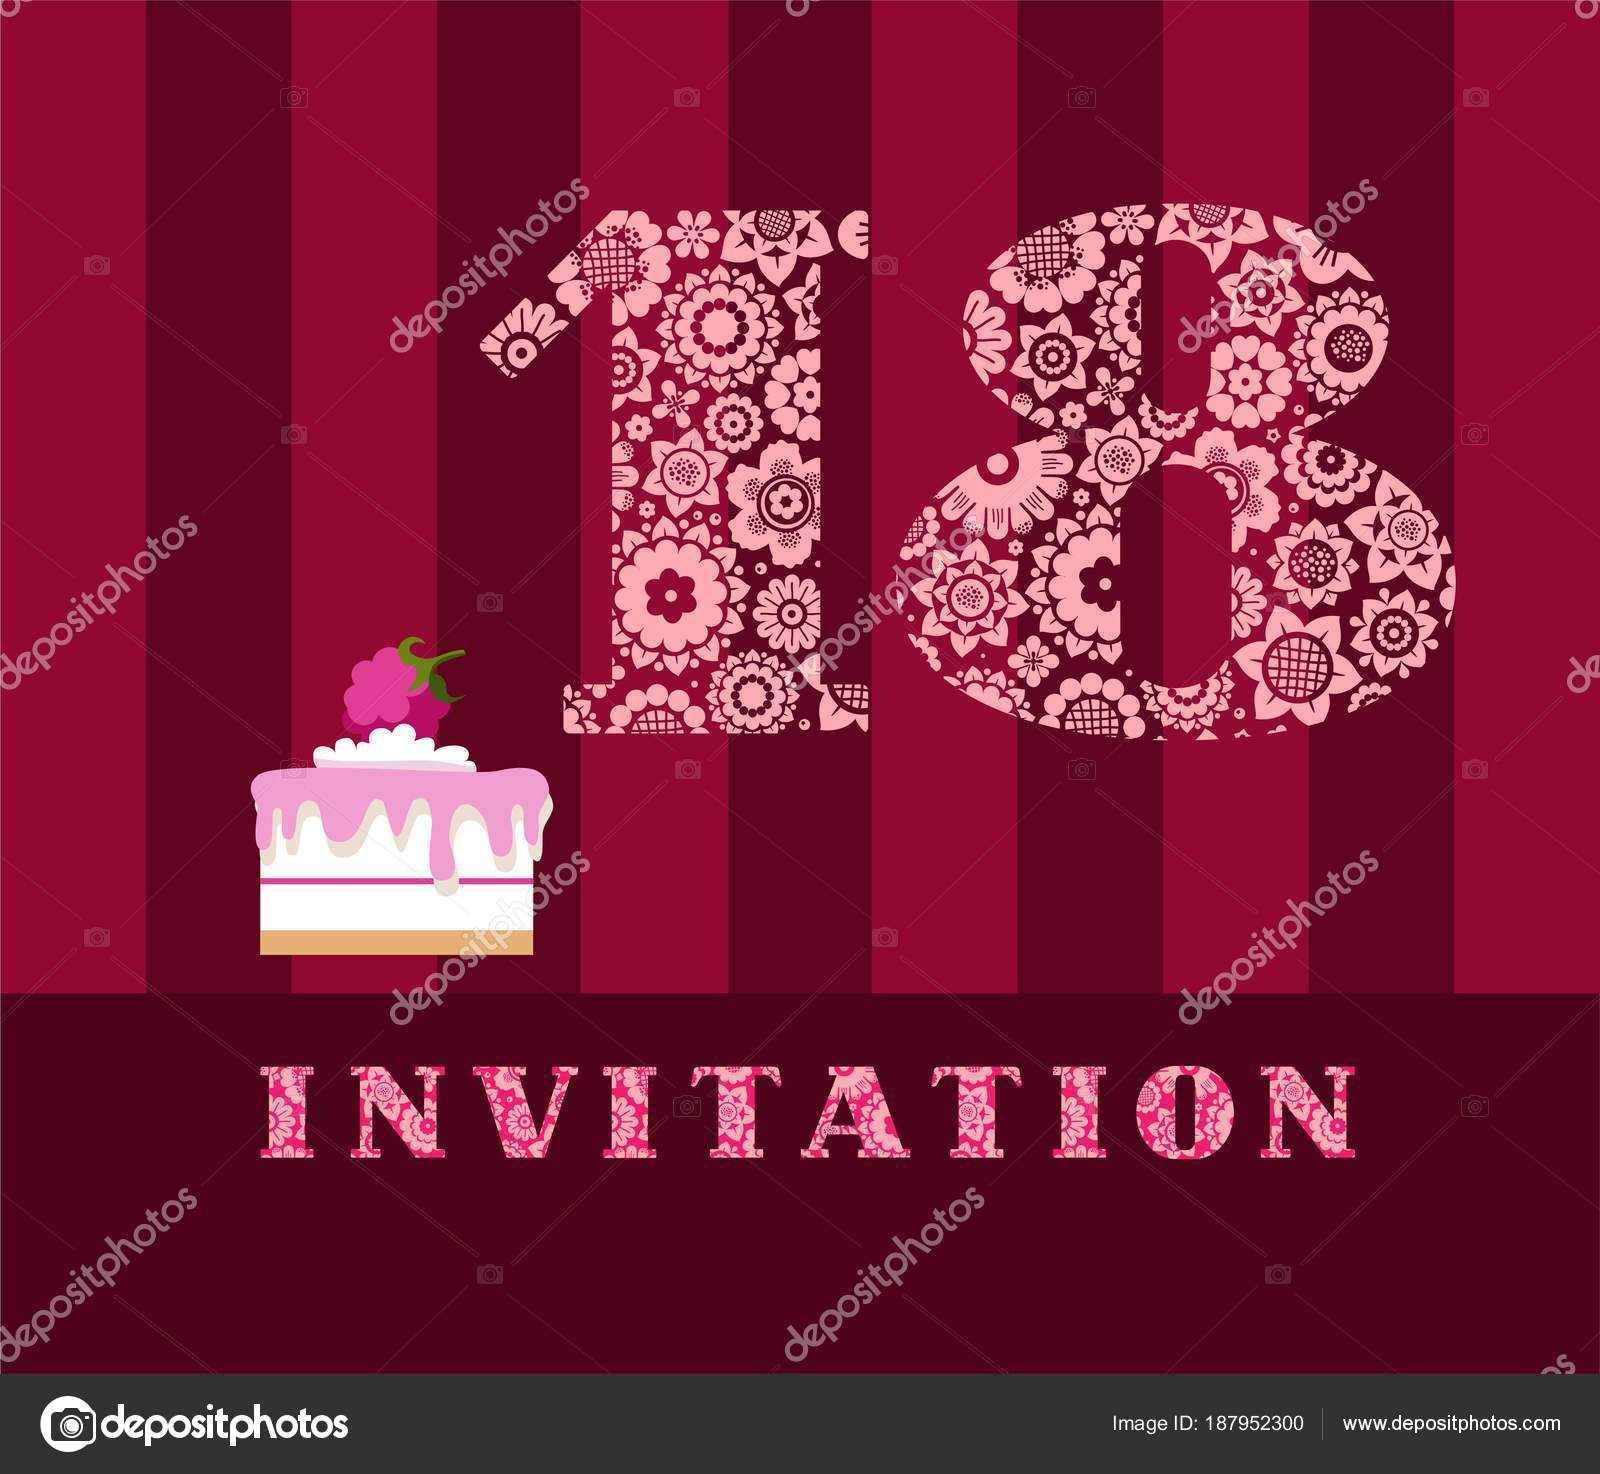 Invitation 18 Years Old Cake Color Vector The To Birthday Party Wedding Anniversary Card With Raspberries